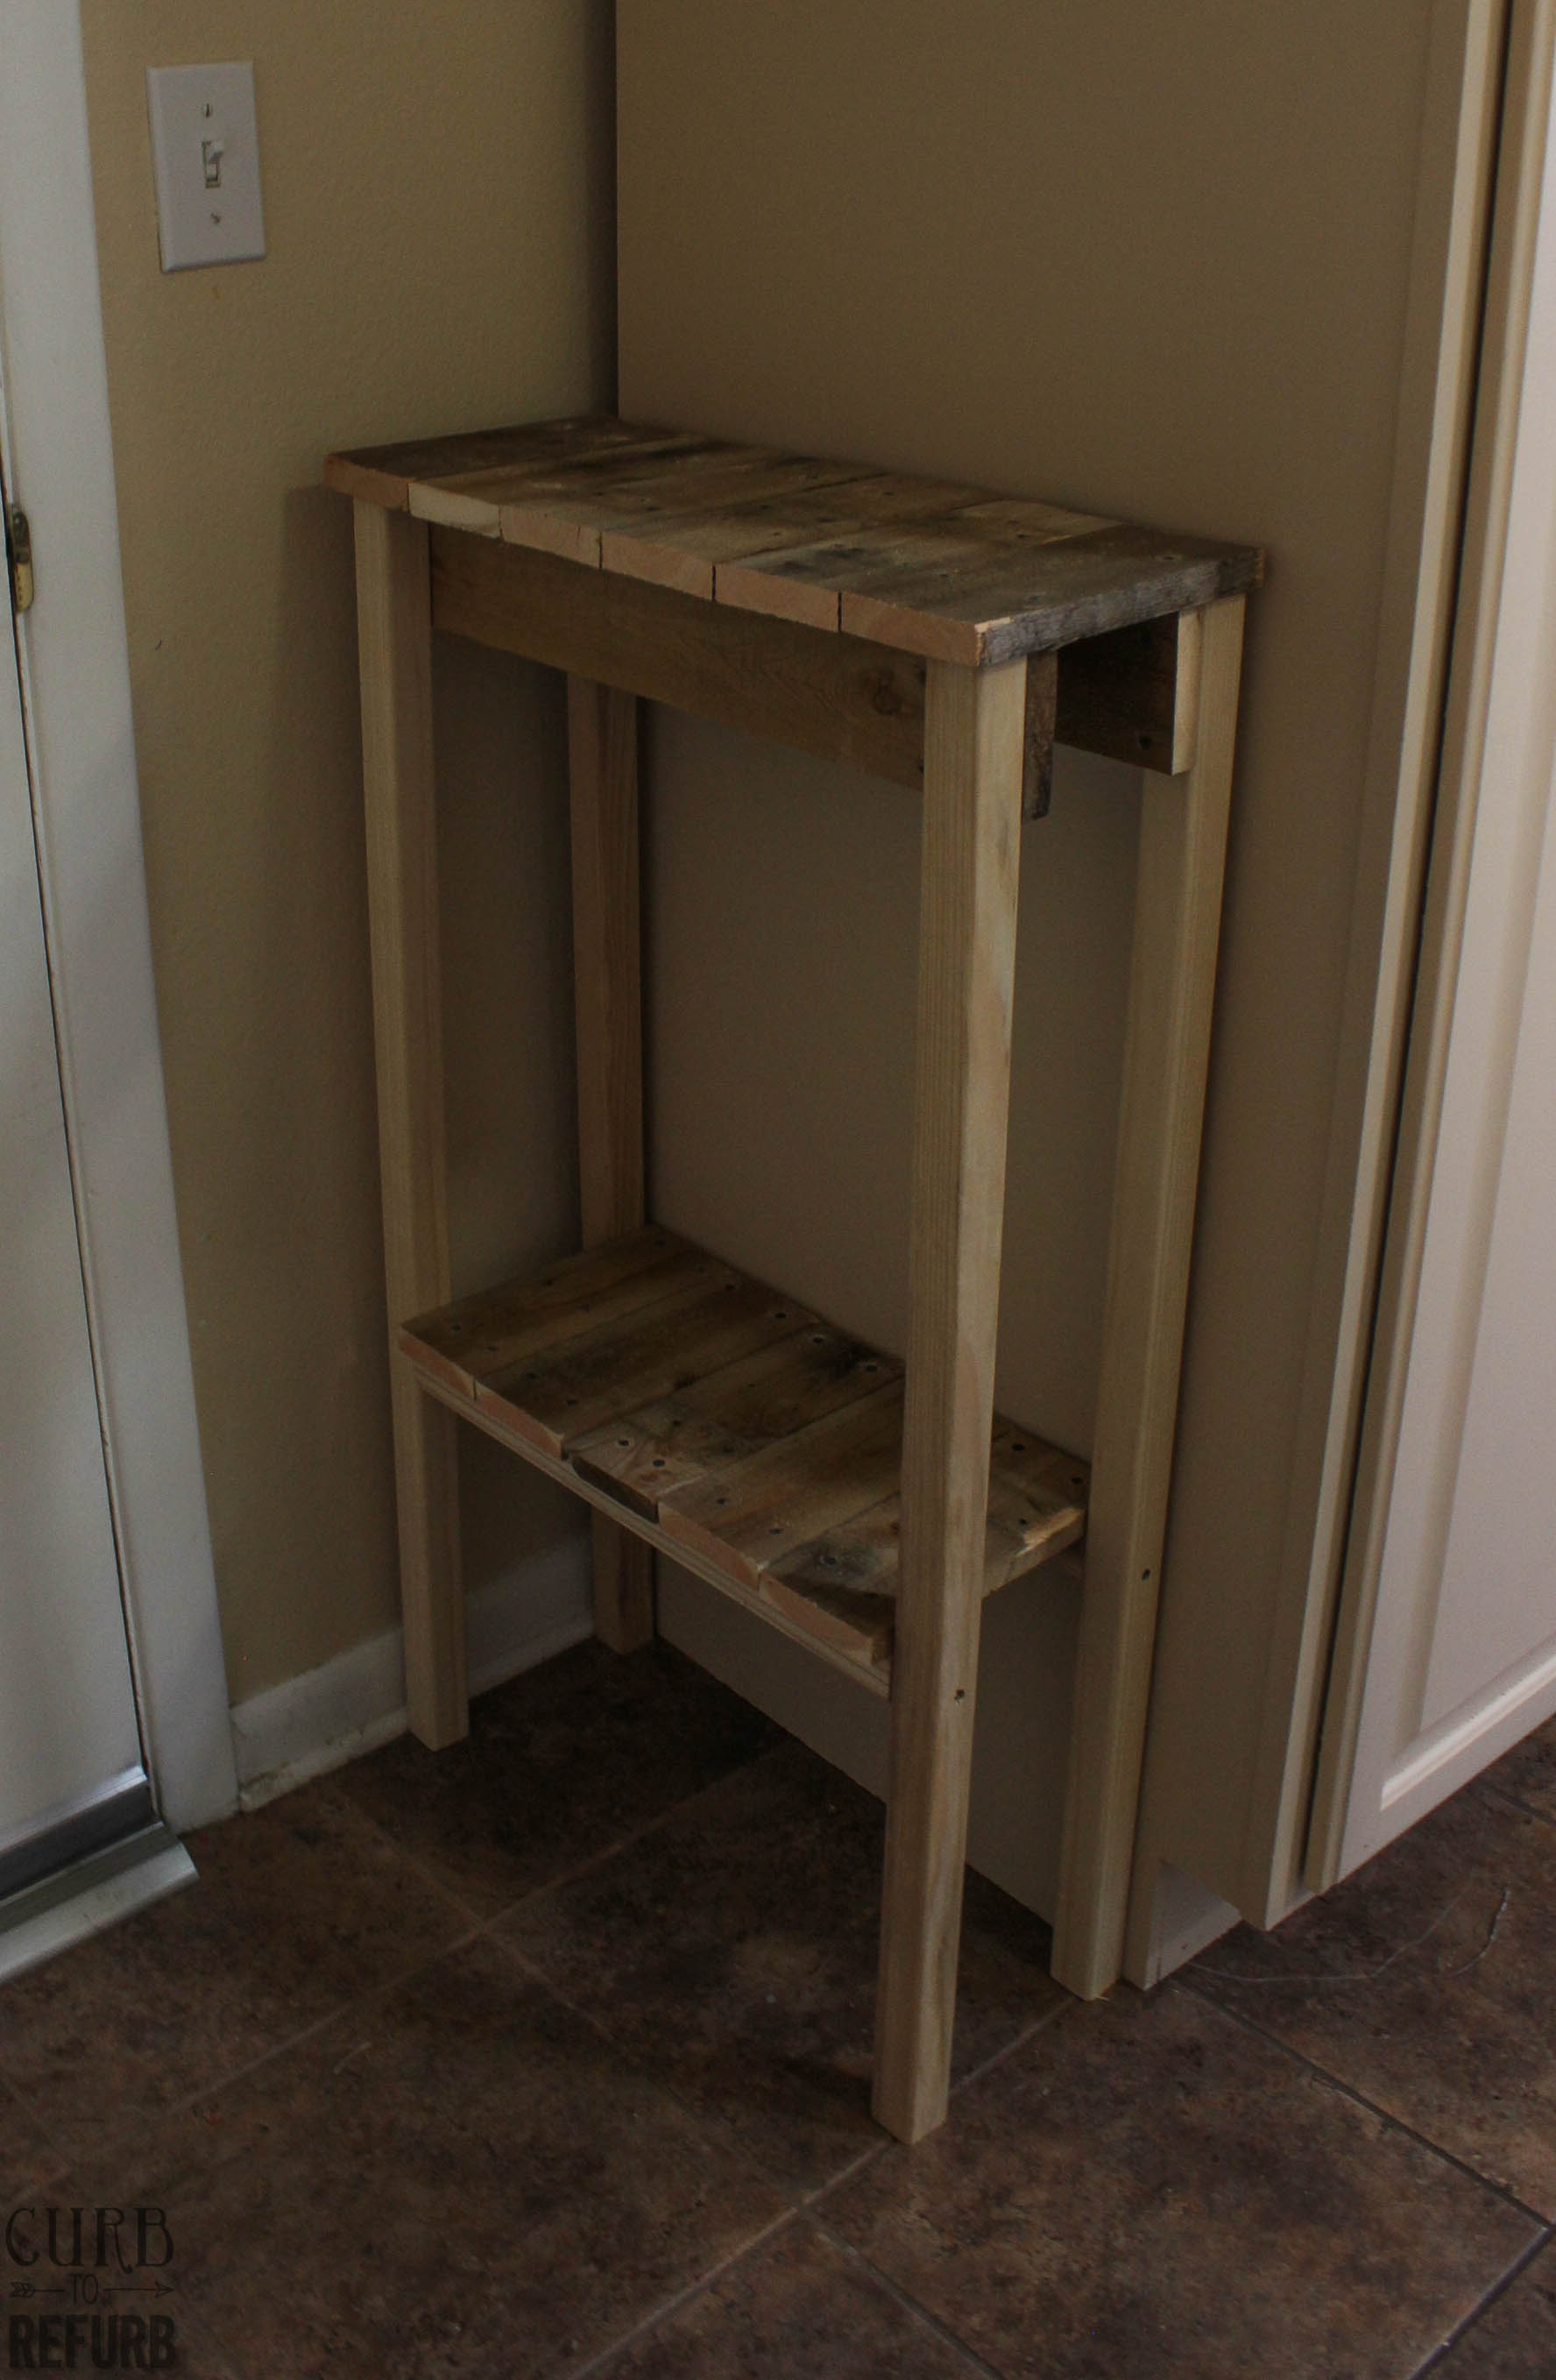 Diy crate console table - Diy Console Table Upcyled From A Pallet By Curb To Refurb Featured On Remodelaholic